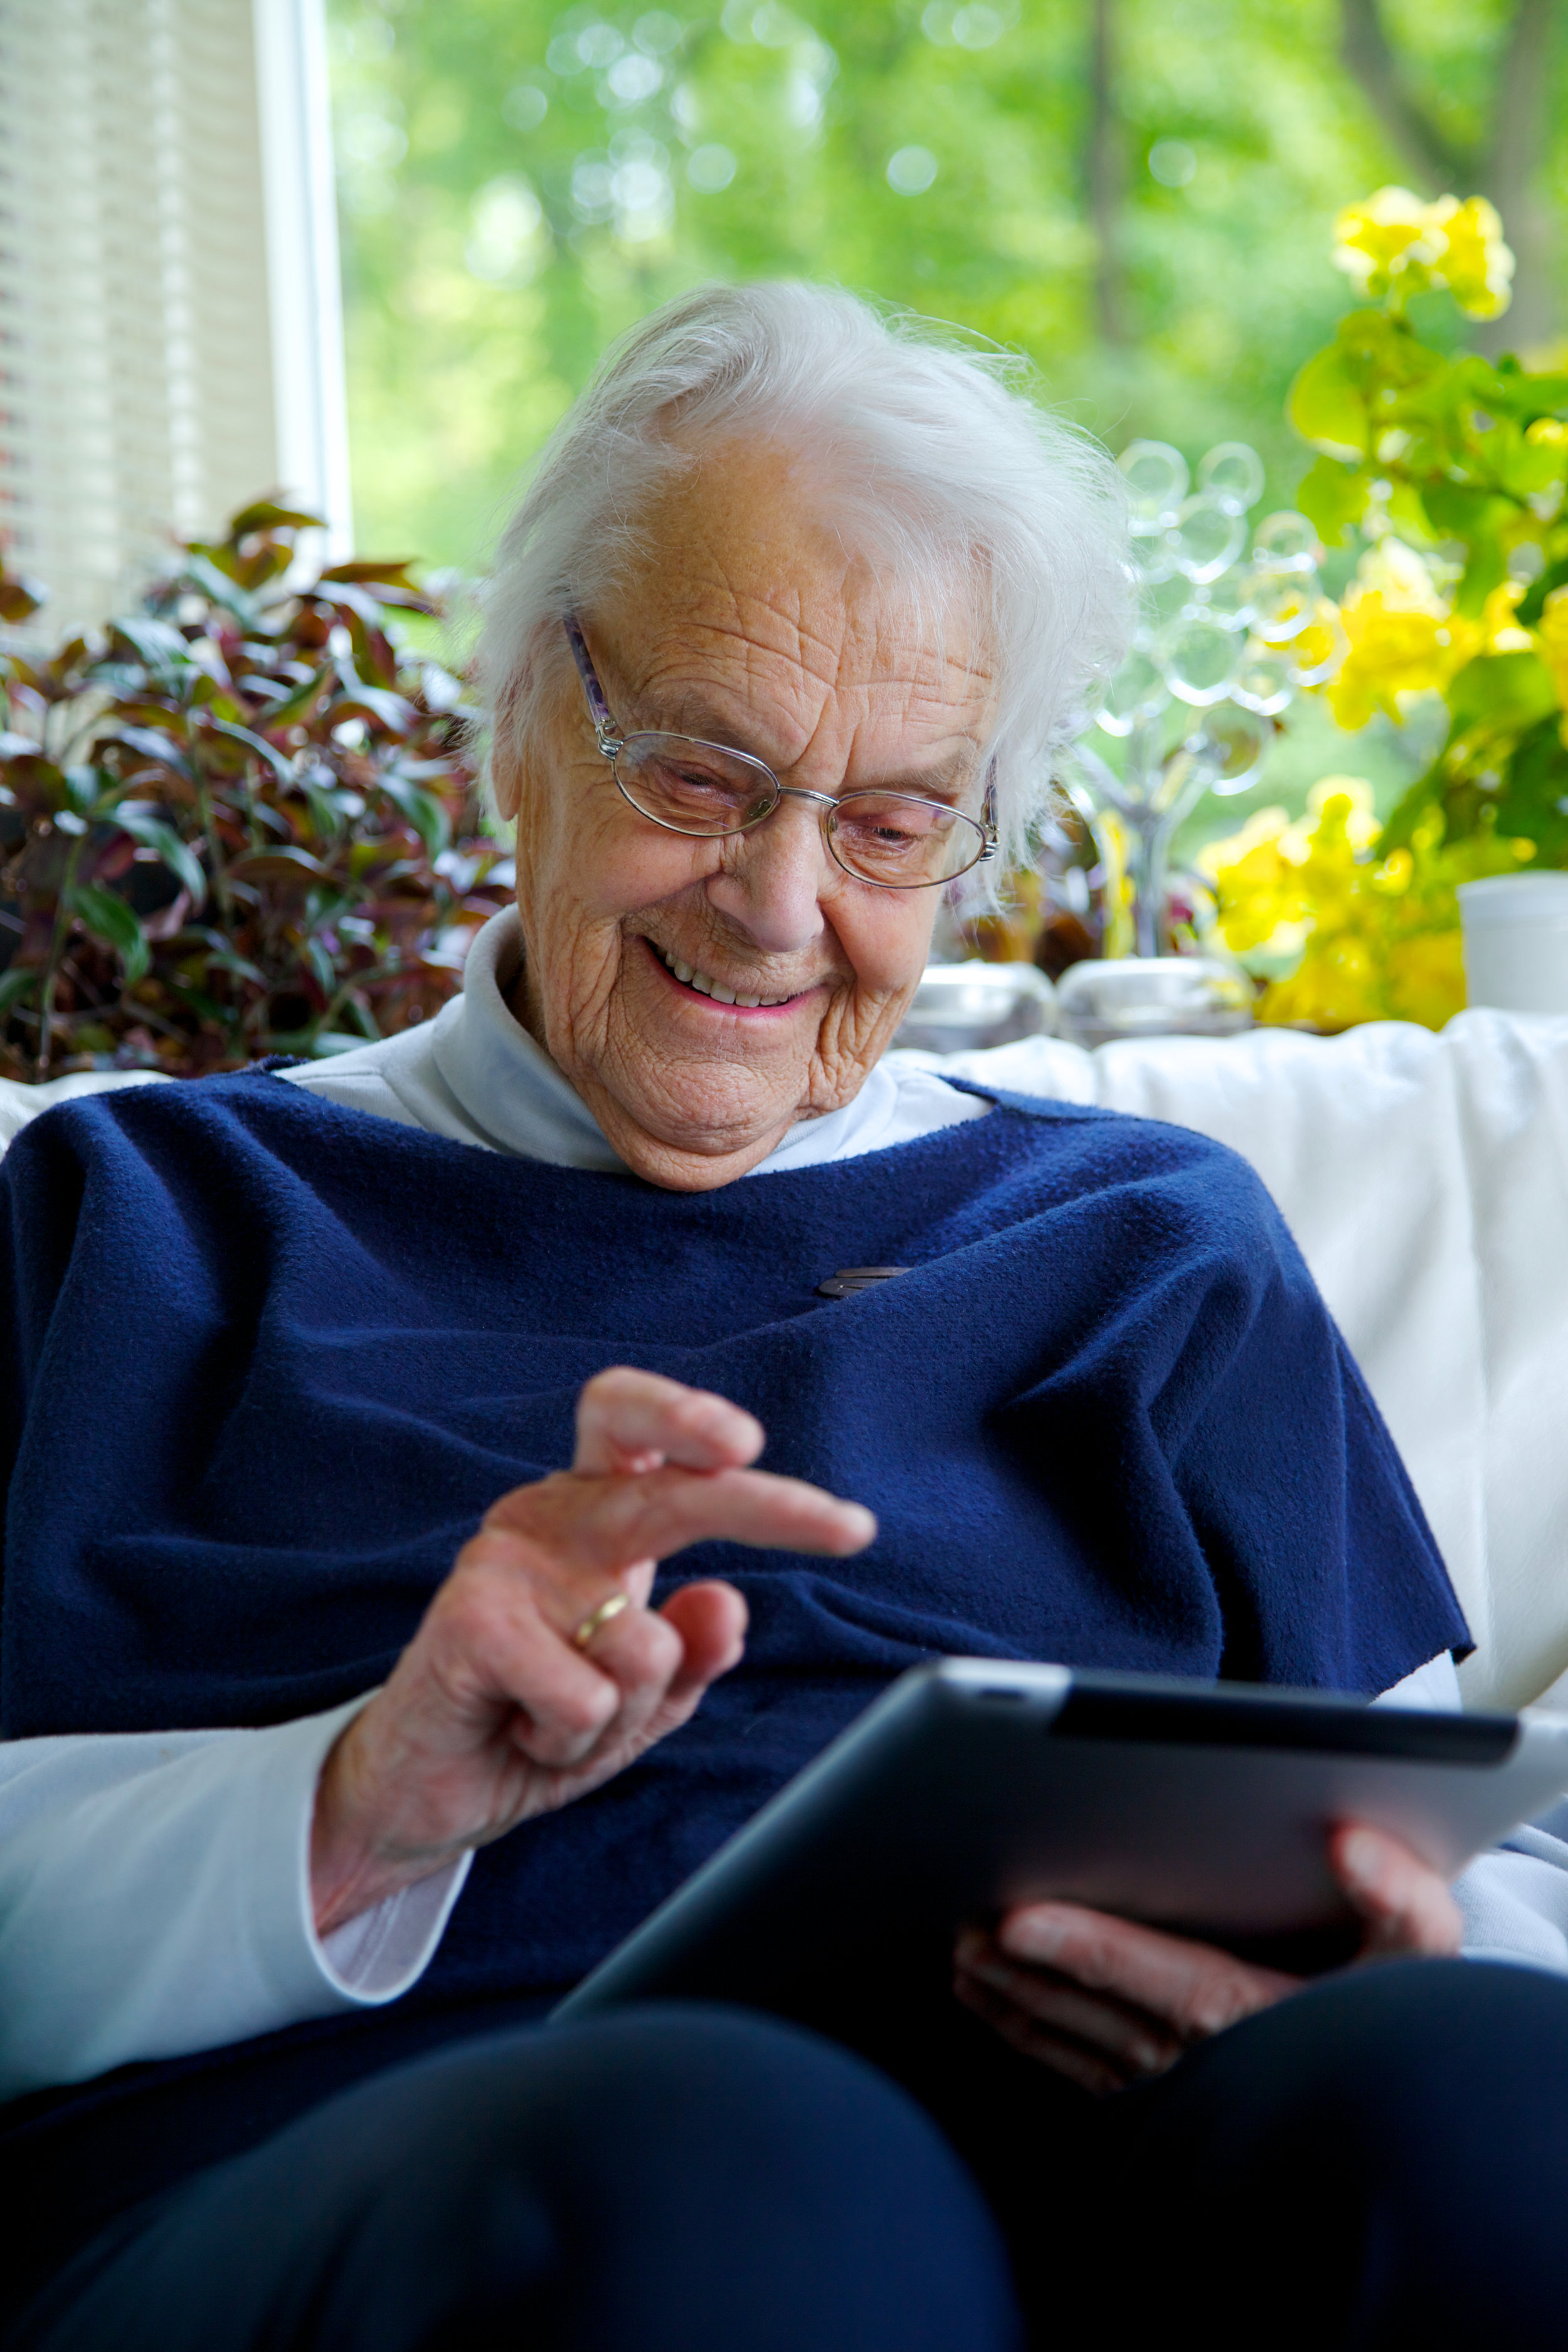 apps can be a helpful supplement to aphasia speech therapy program